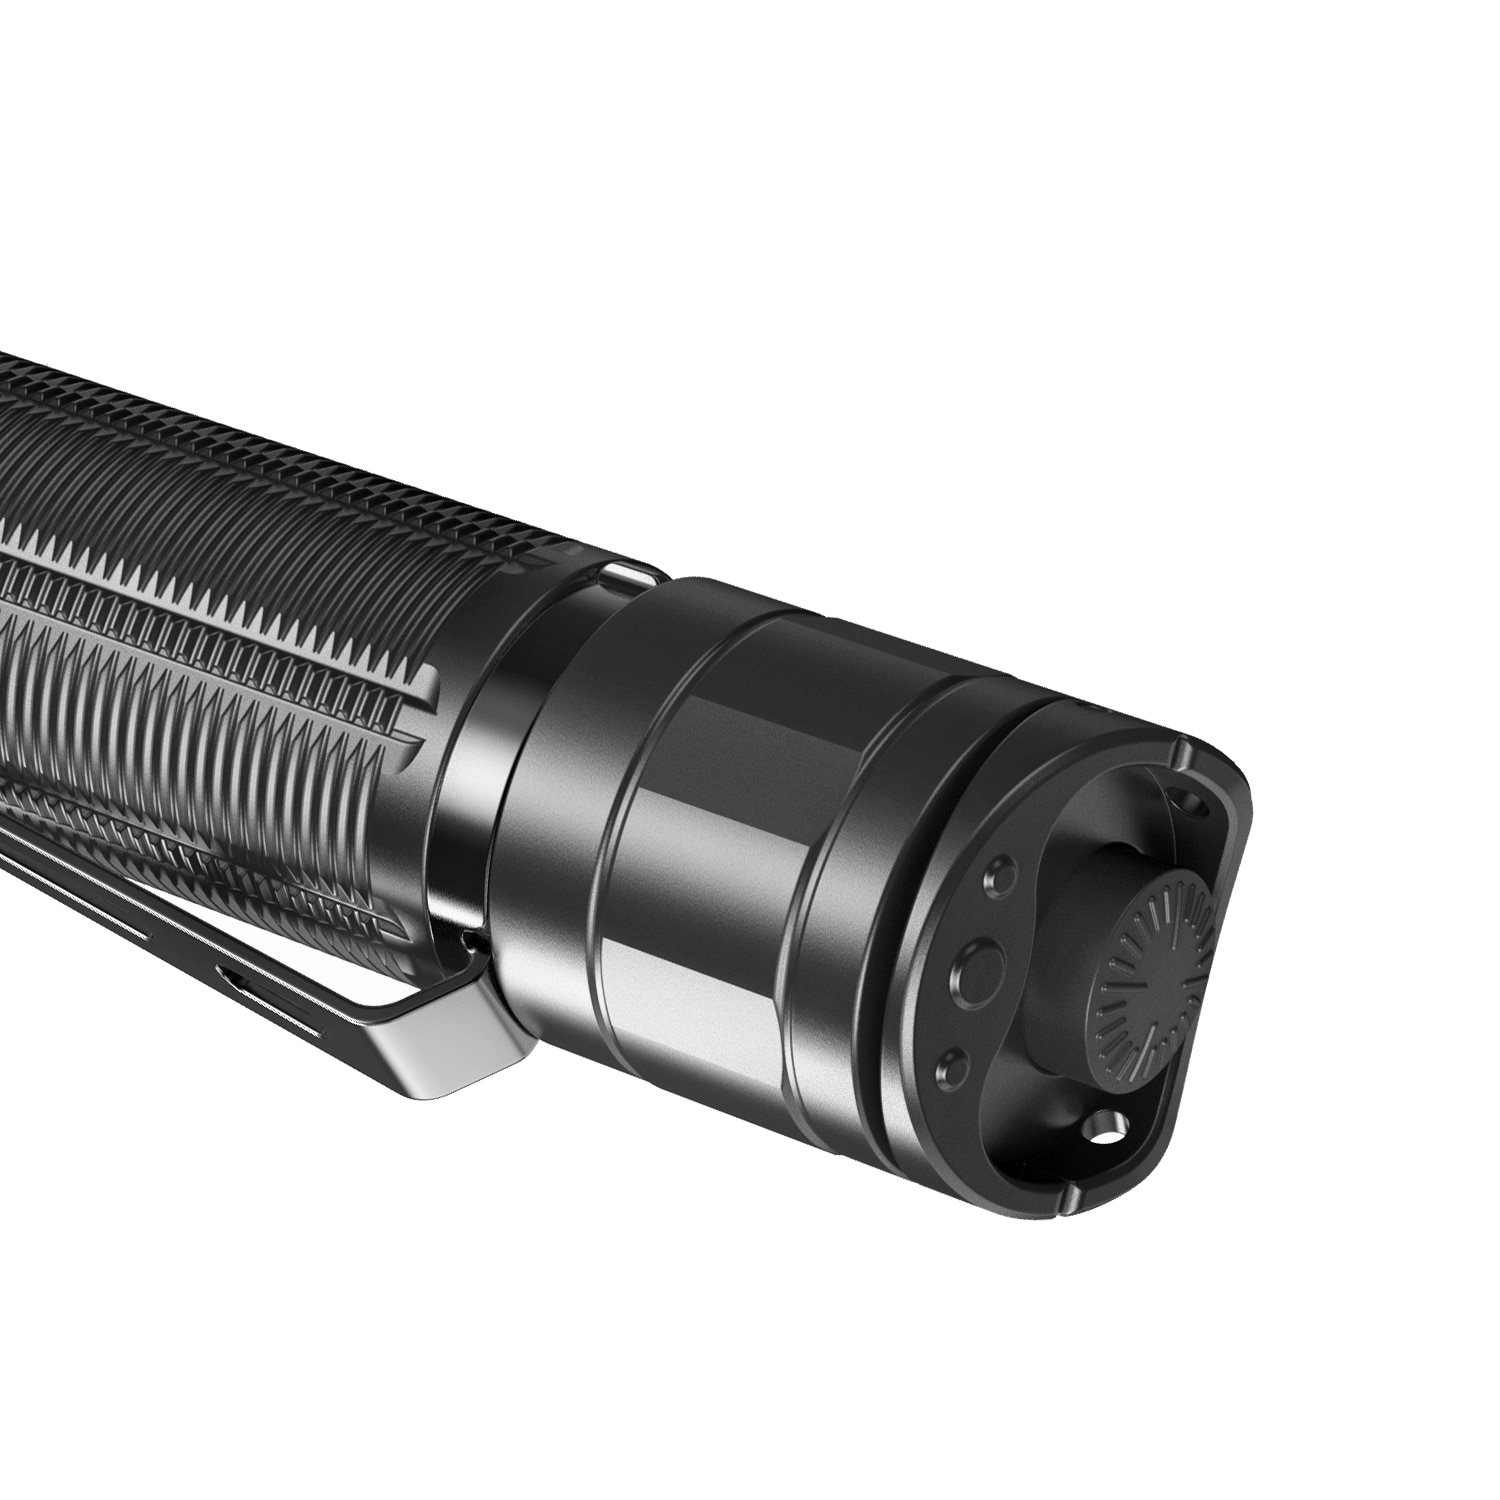 Klarus XT21C Tactical Flashlight SST70 3200 LM Type-C Charging Lantern LED Flashlight with 21700 Battery for Outdoor Activities enlarge